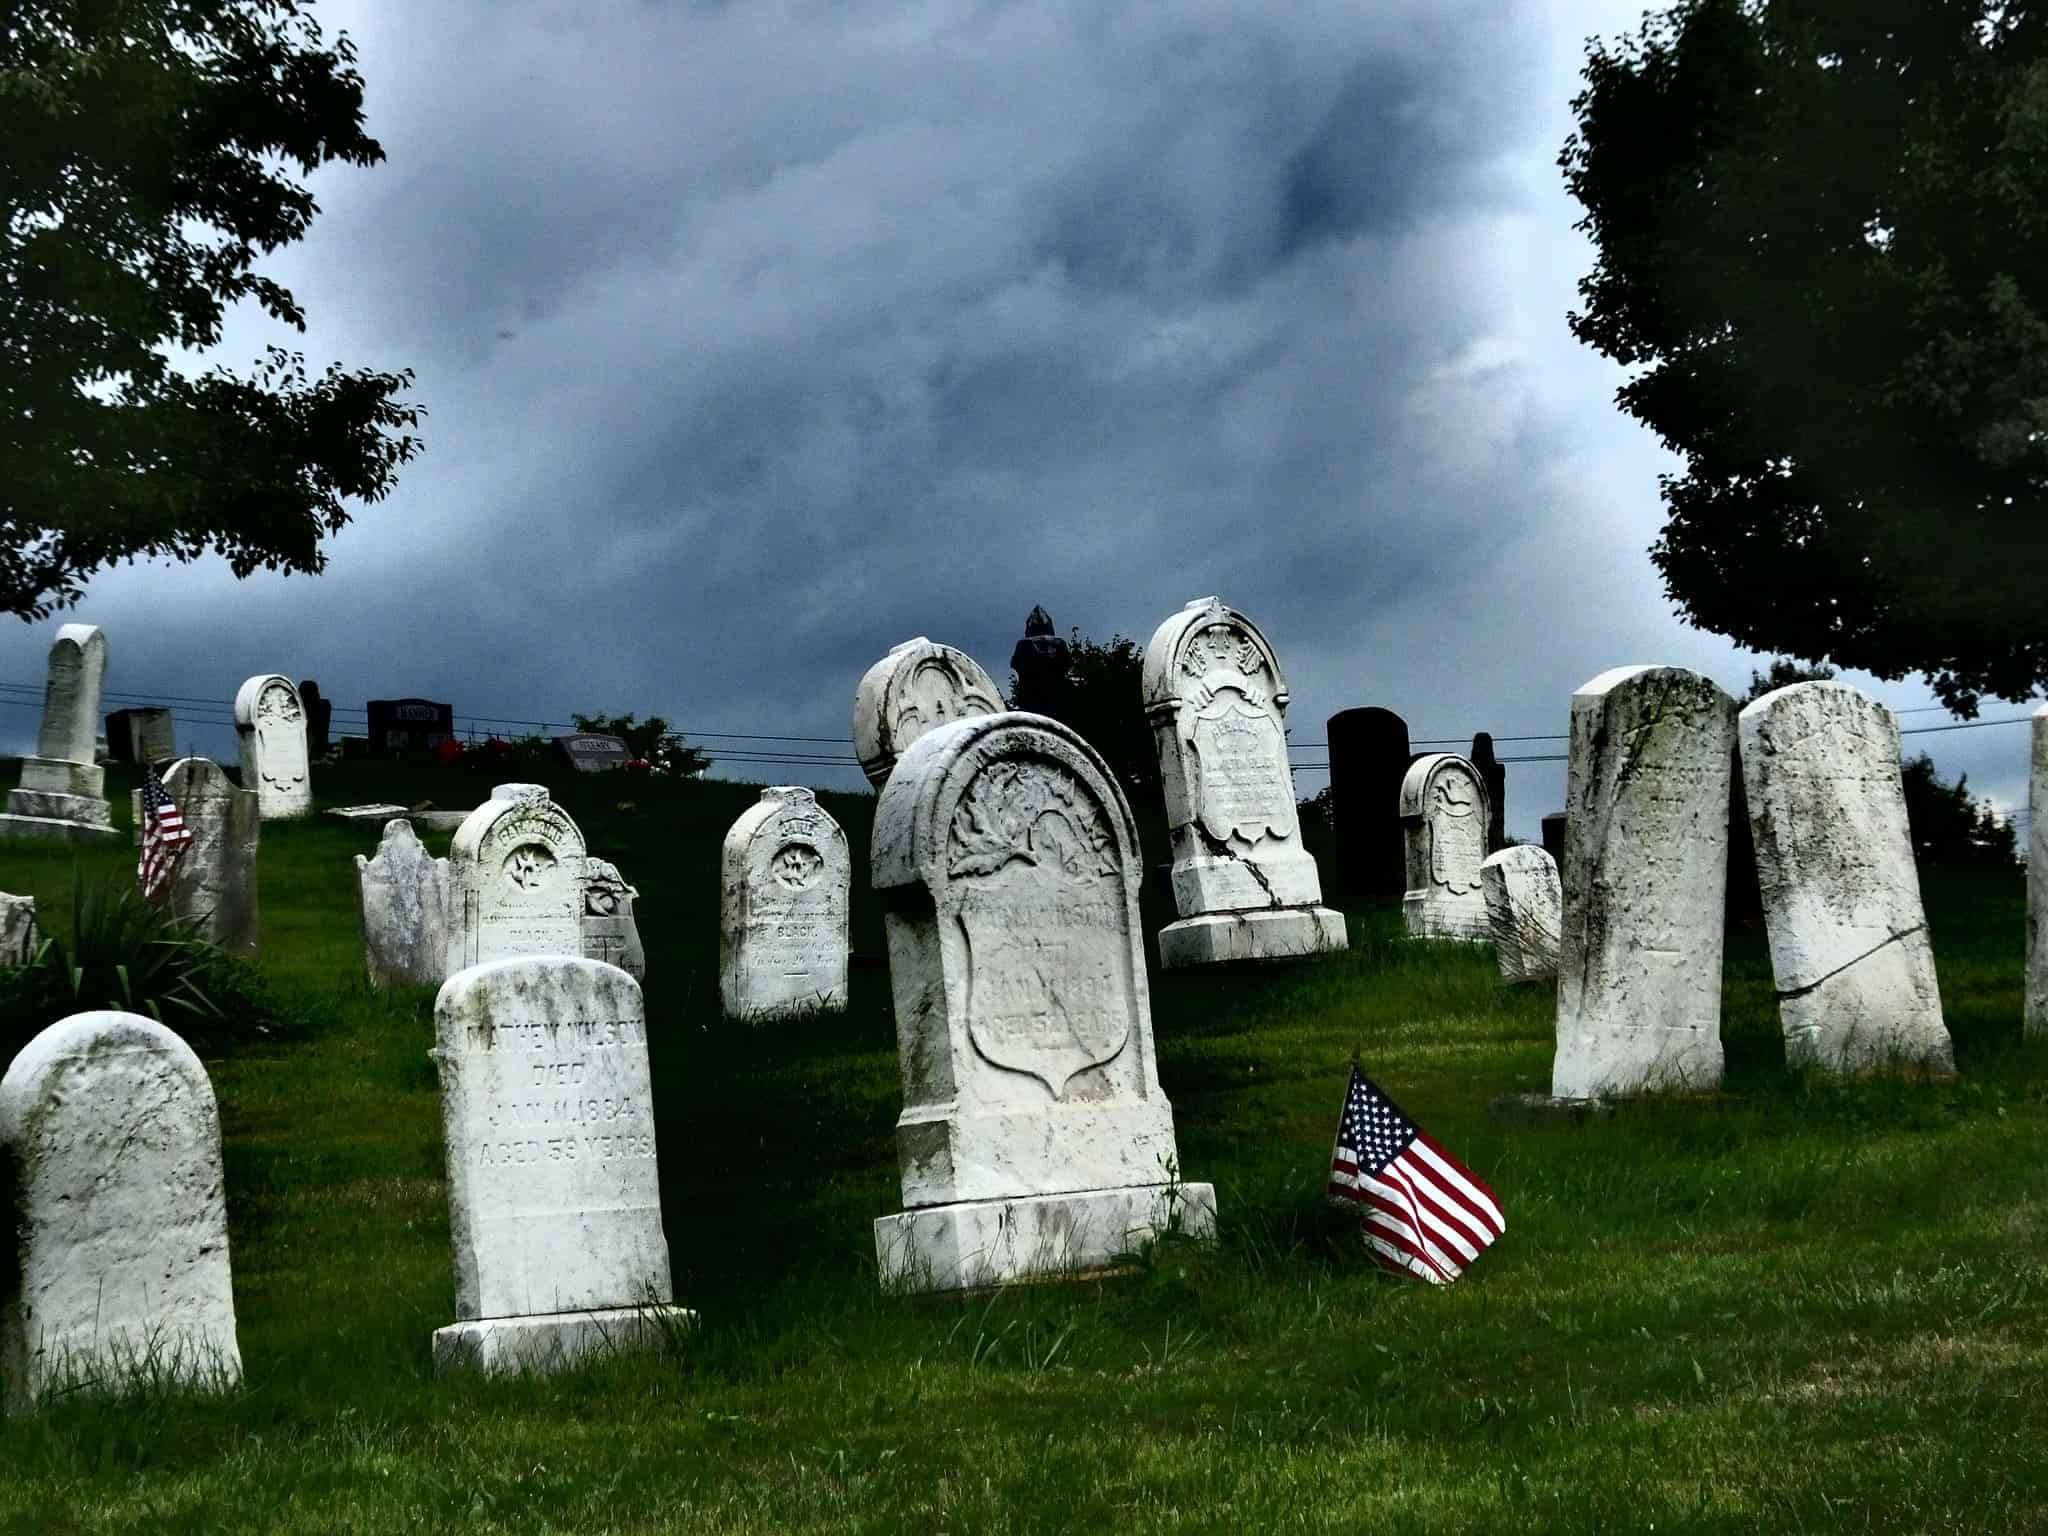 A cemetery in Monroeville, Pennsylvania. Photo by Cam Miller/Flickr